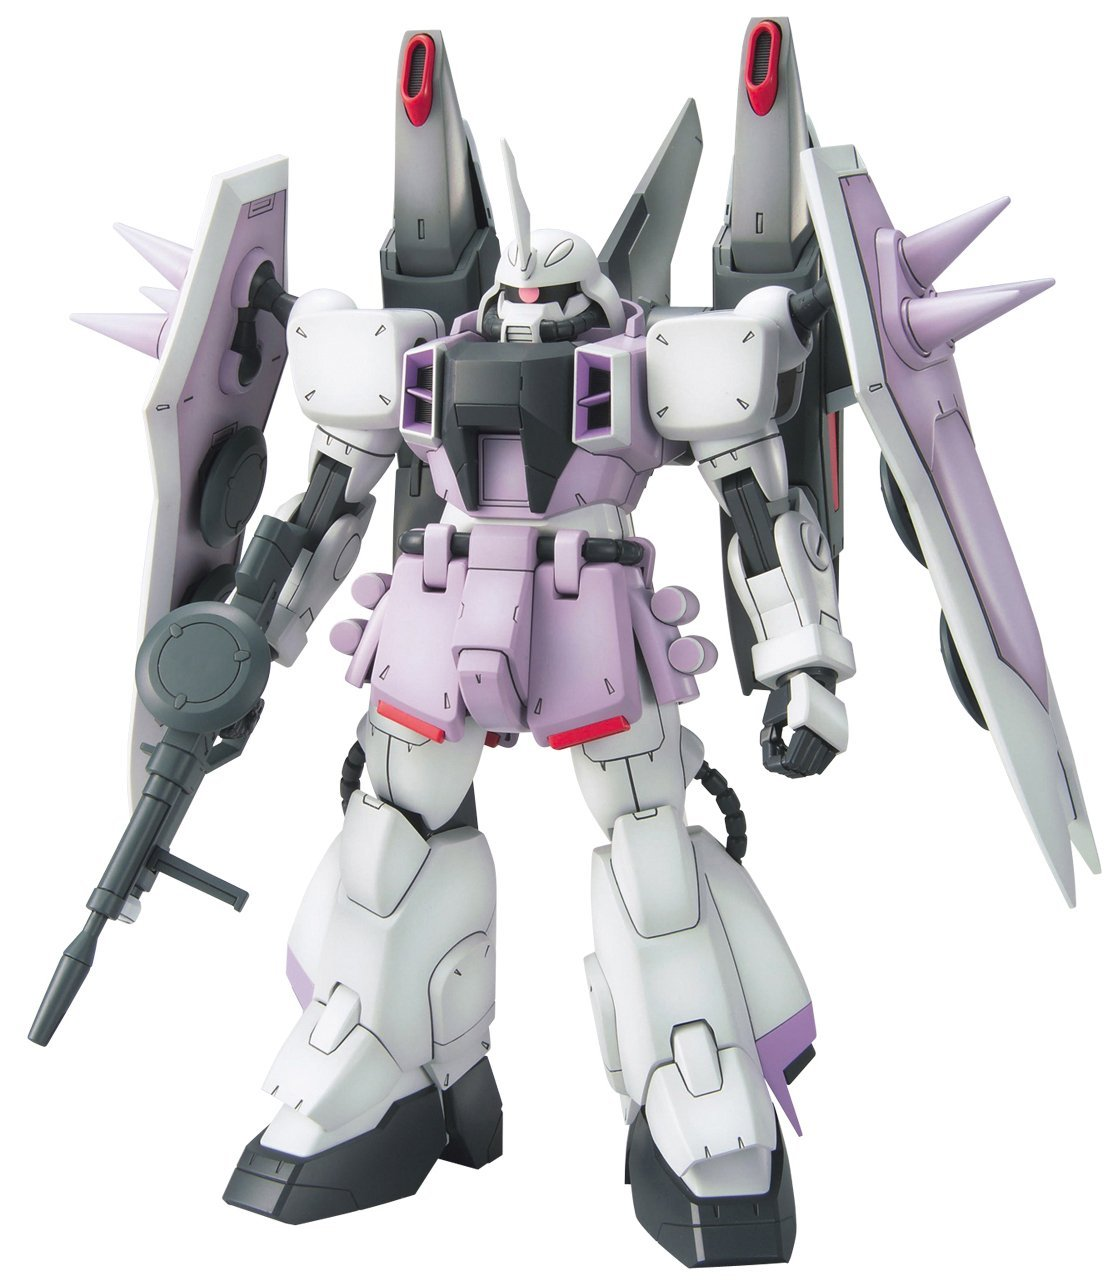 Gundam Seed Destiny 04 Blaze Zaku Phantom 1/100 1/100 1/100 Scale Model Kit 5dfff2